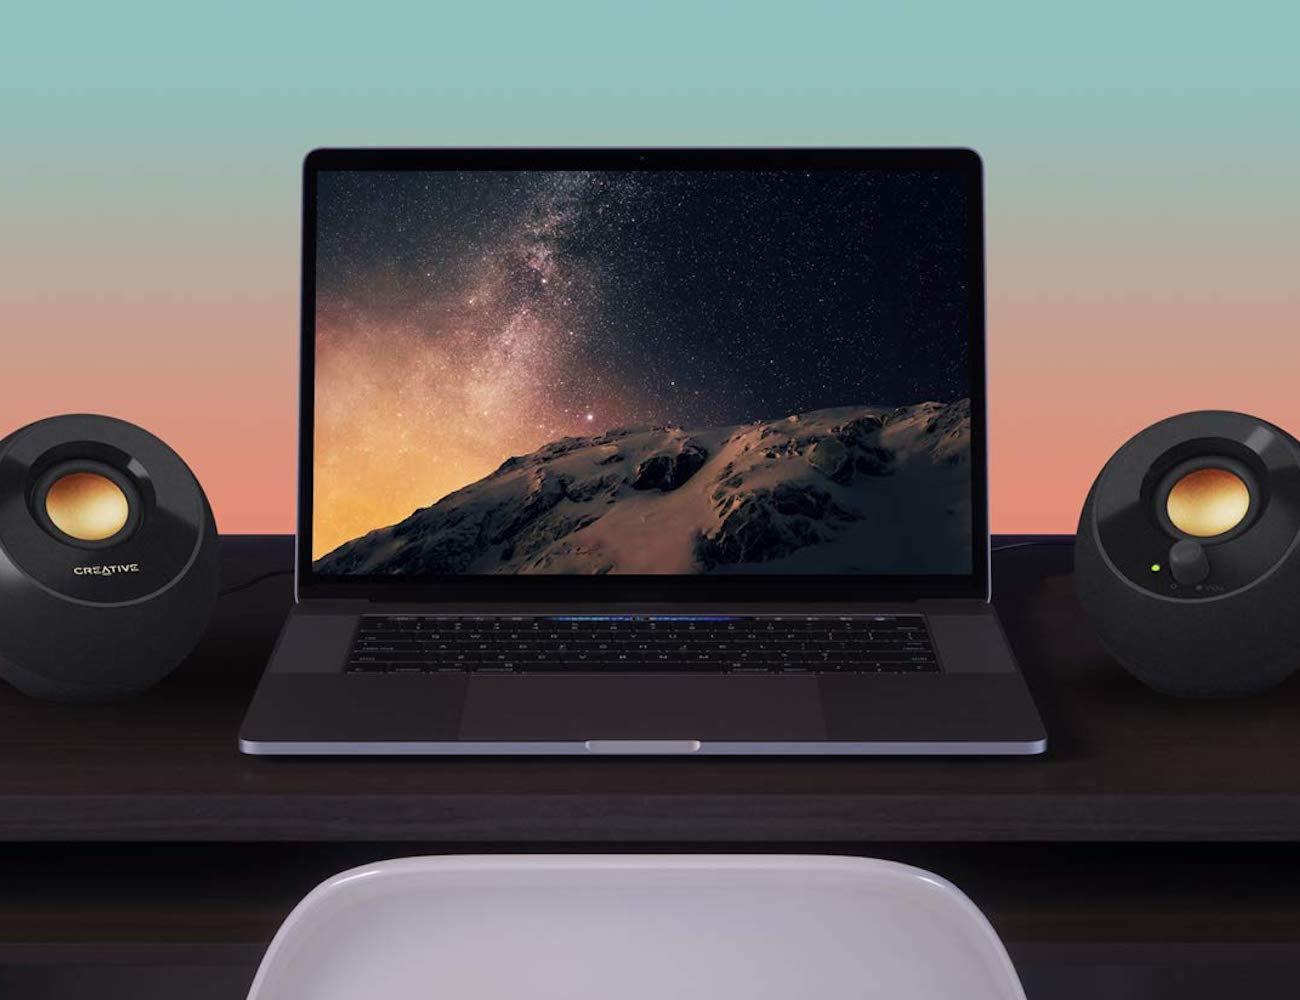 Creative Pebble Plus USB-Connected Desktop Speakers give you extra bass from their subwoofer